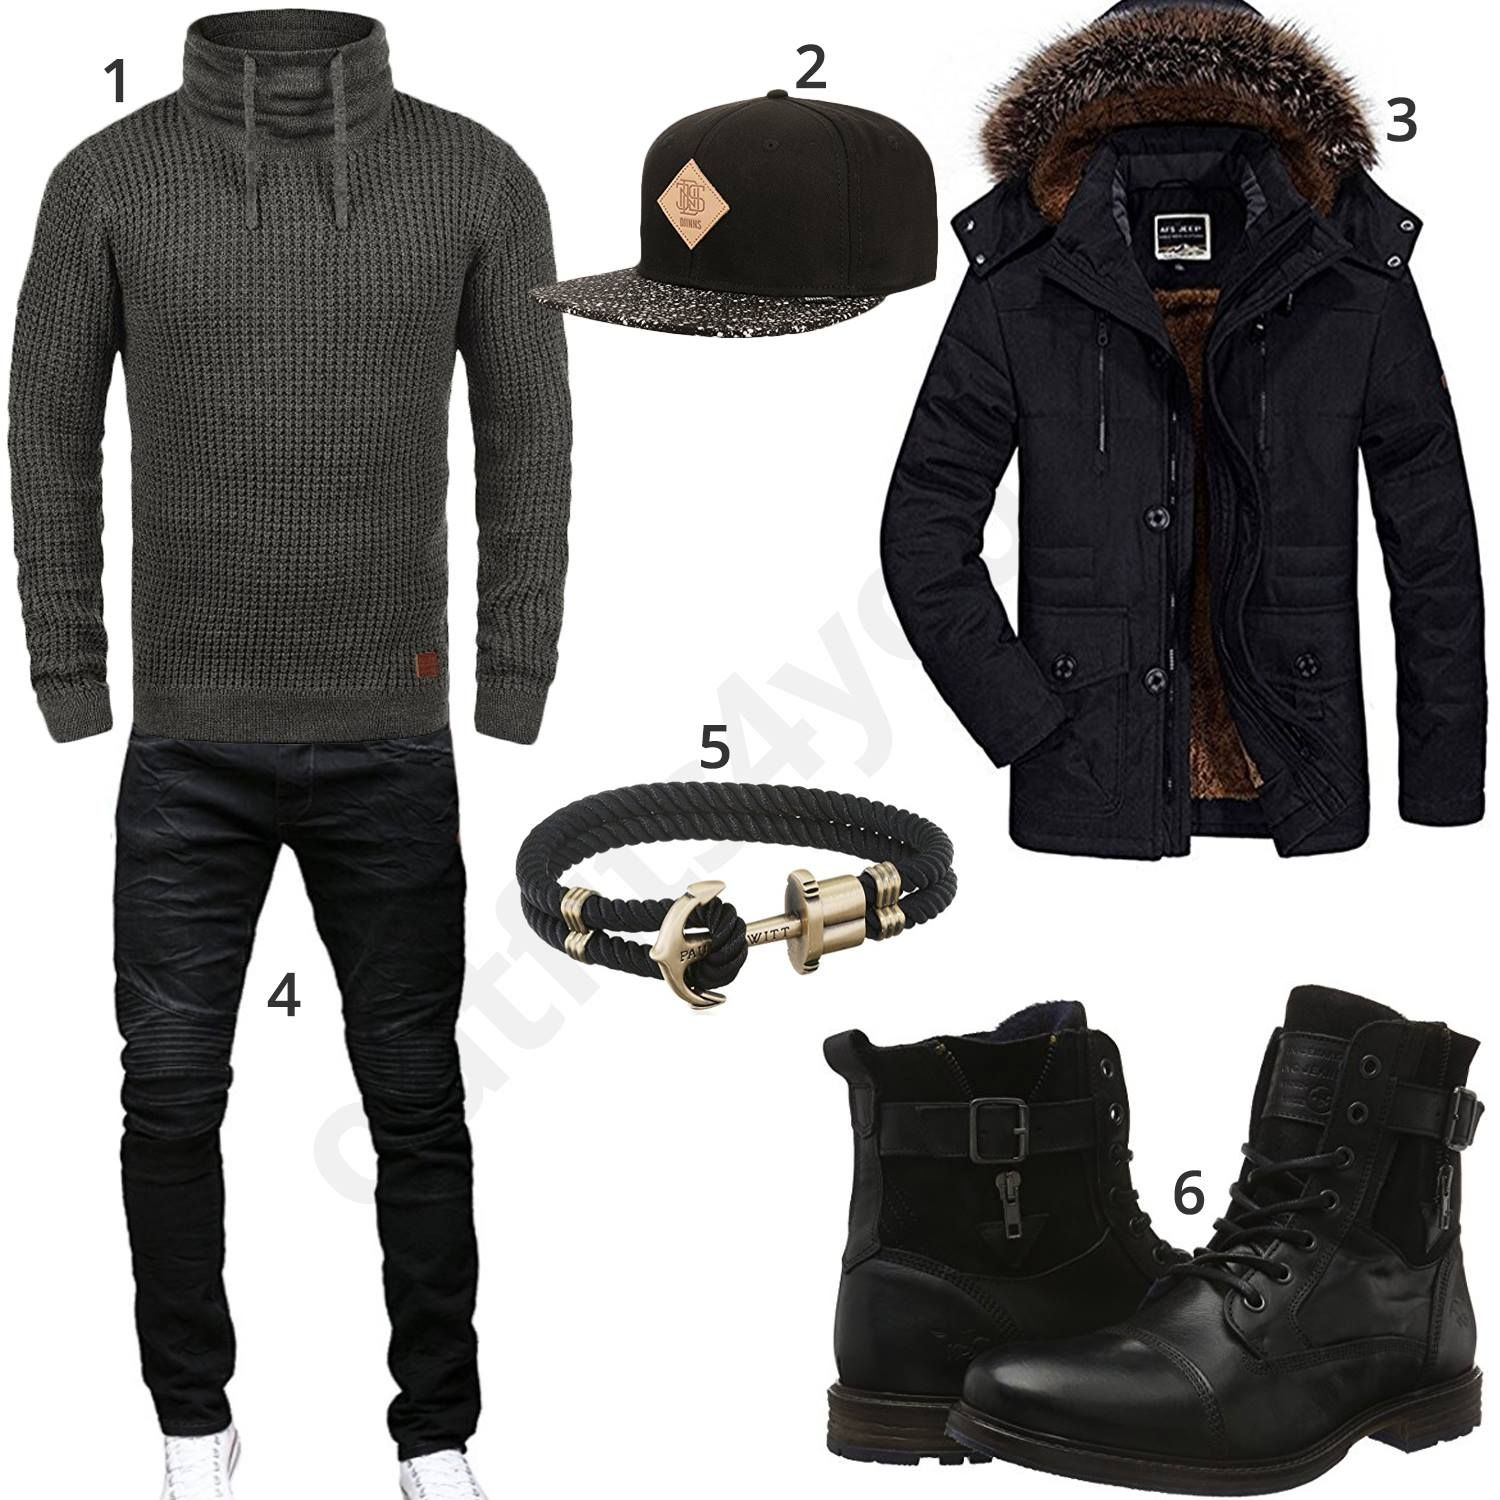 Cooler Herren-Style in Schwarz mit Cap und Armband (m0804)  parka  jeans   pullover  mustang  outfit  style  herrenmode  männermode  fashion   menswear ... a8db45d031